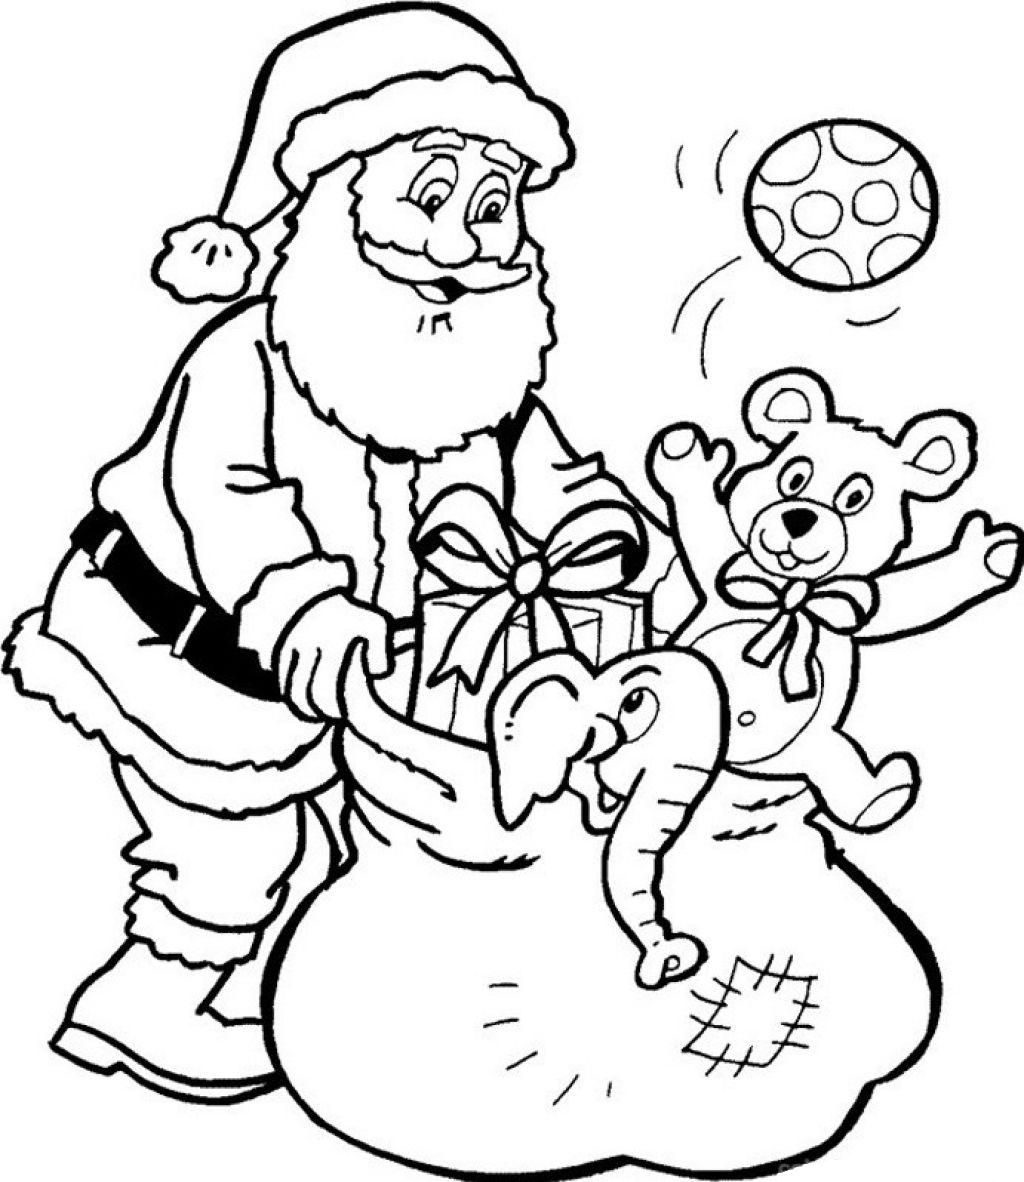 Santa Dog Coloring Pages With Claus And Presents Printable Christmas Some